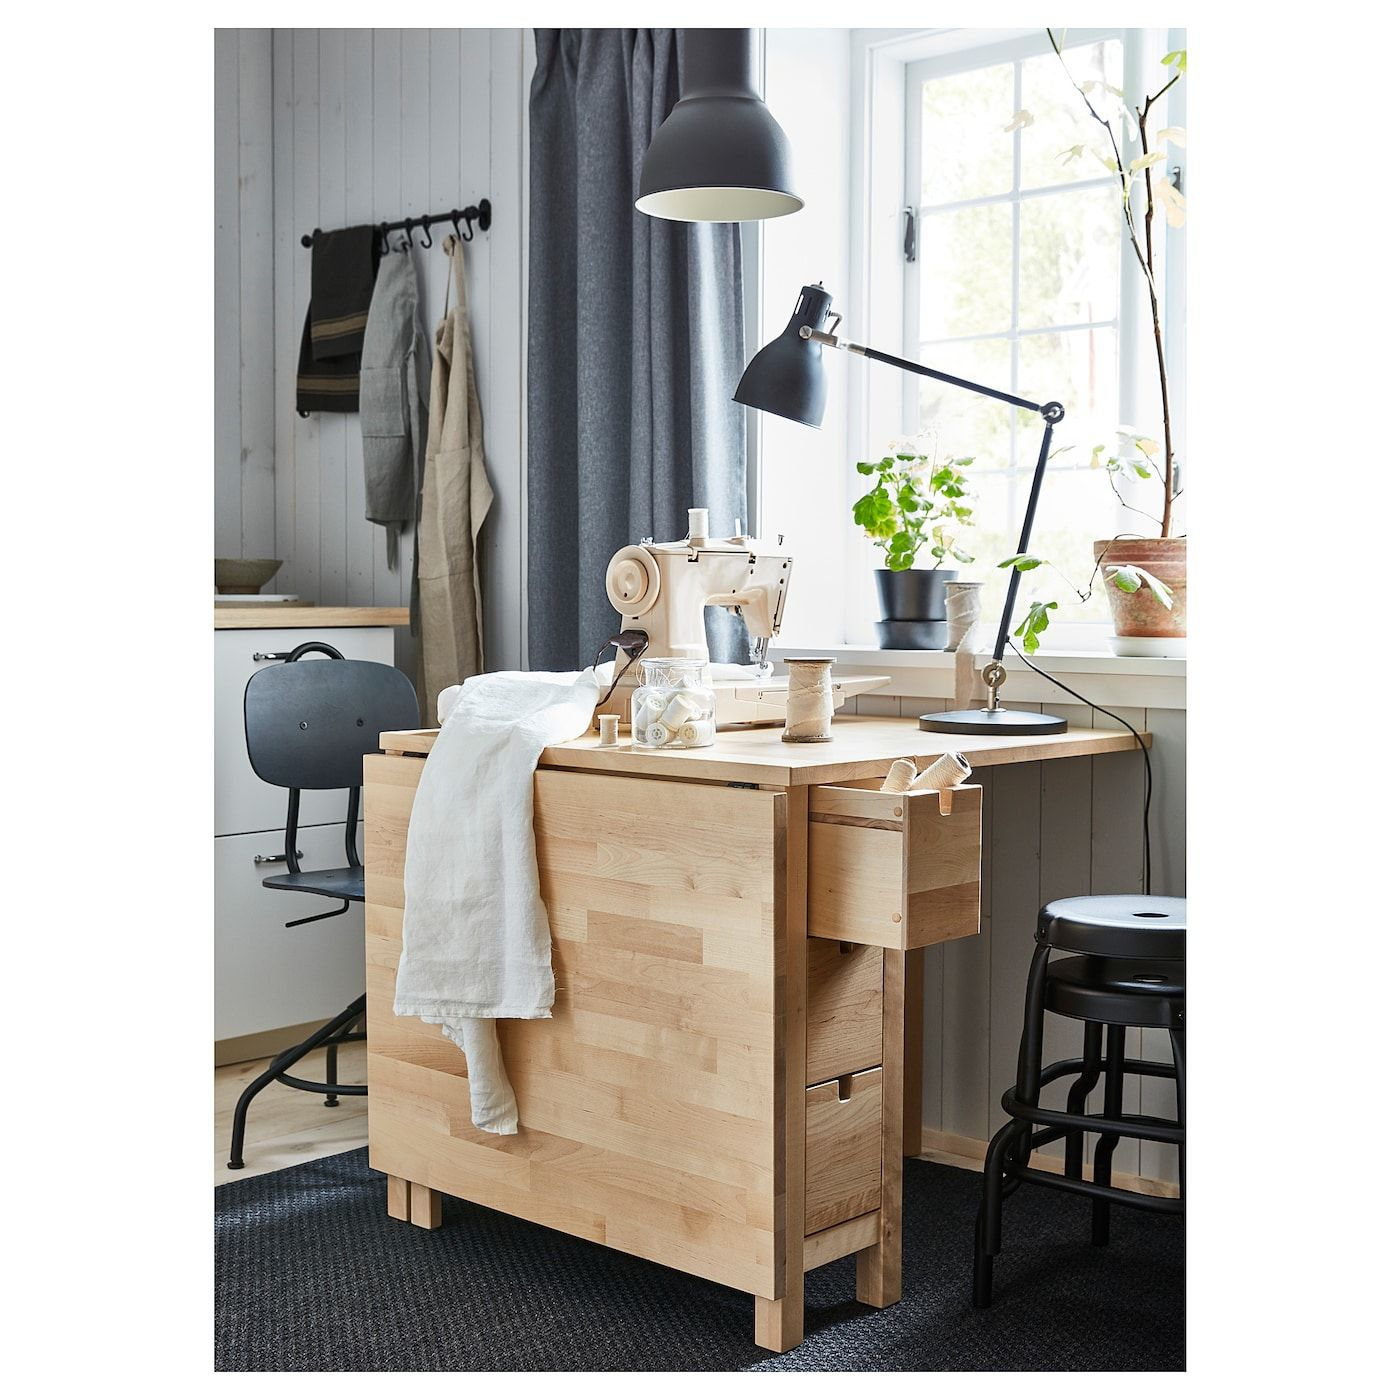 Norden Klapptisch Birke Ikea Deutschland Norden Gateleg Table Ikea Small Spaces Sewing Room Inspiration